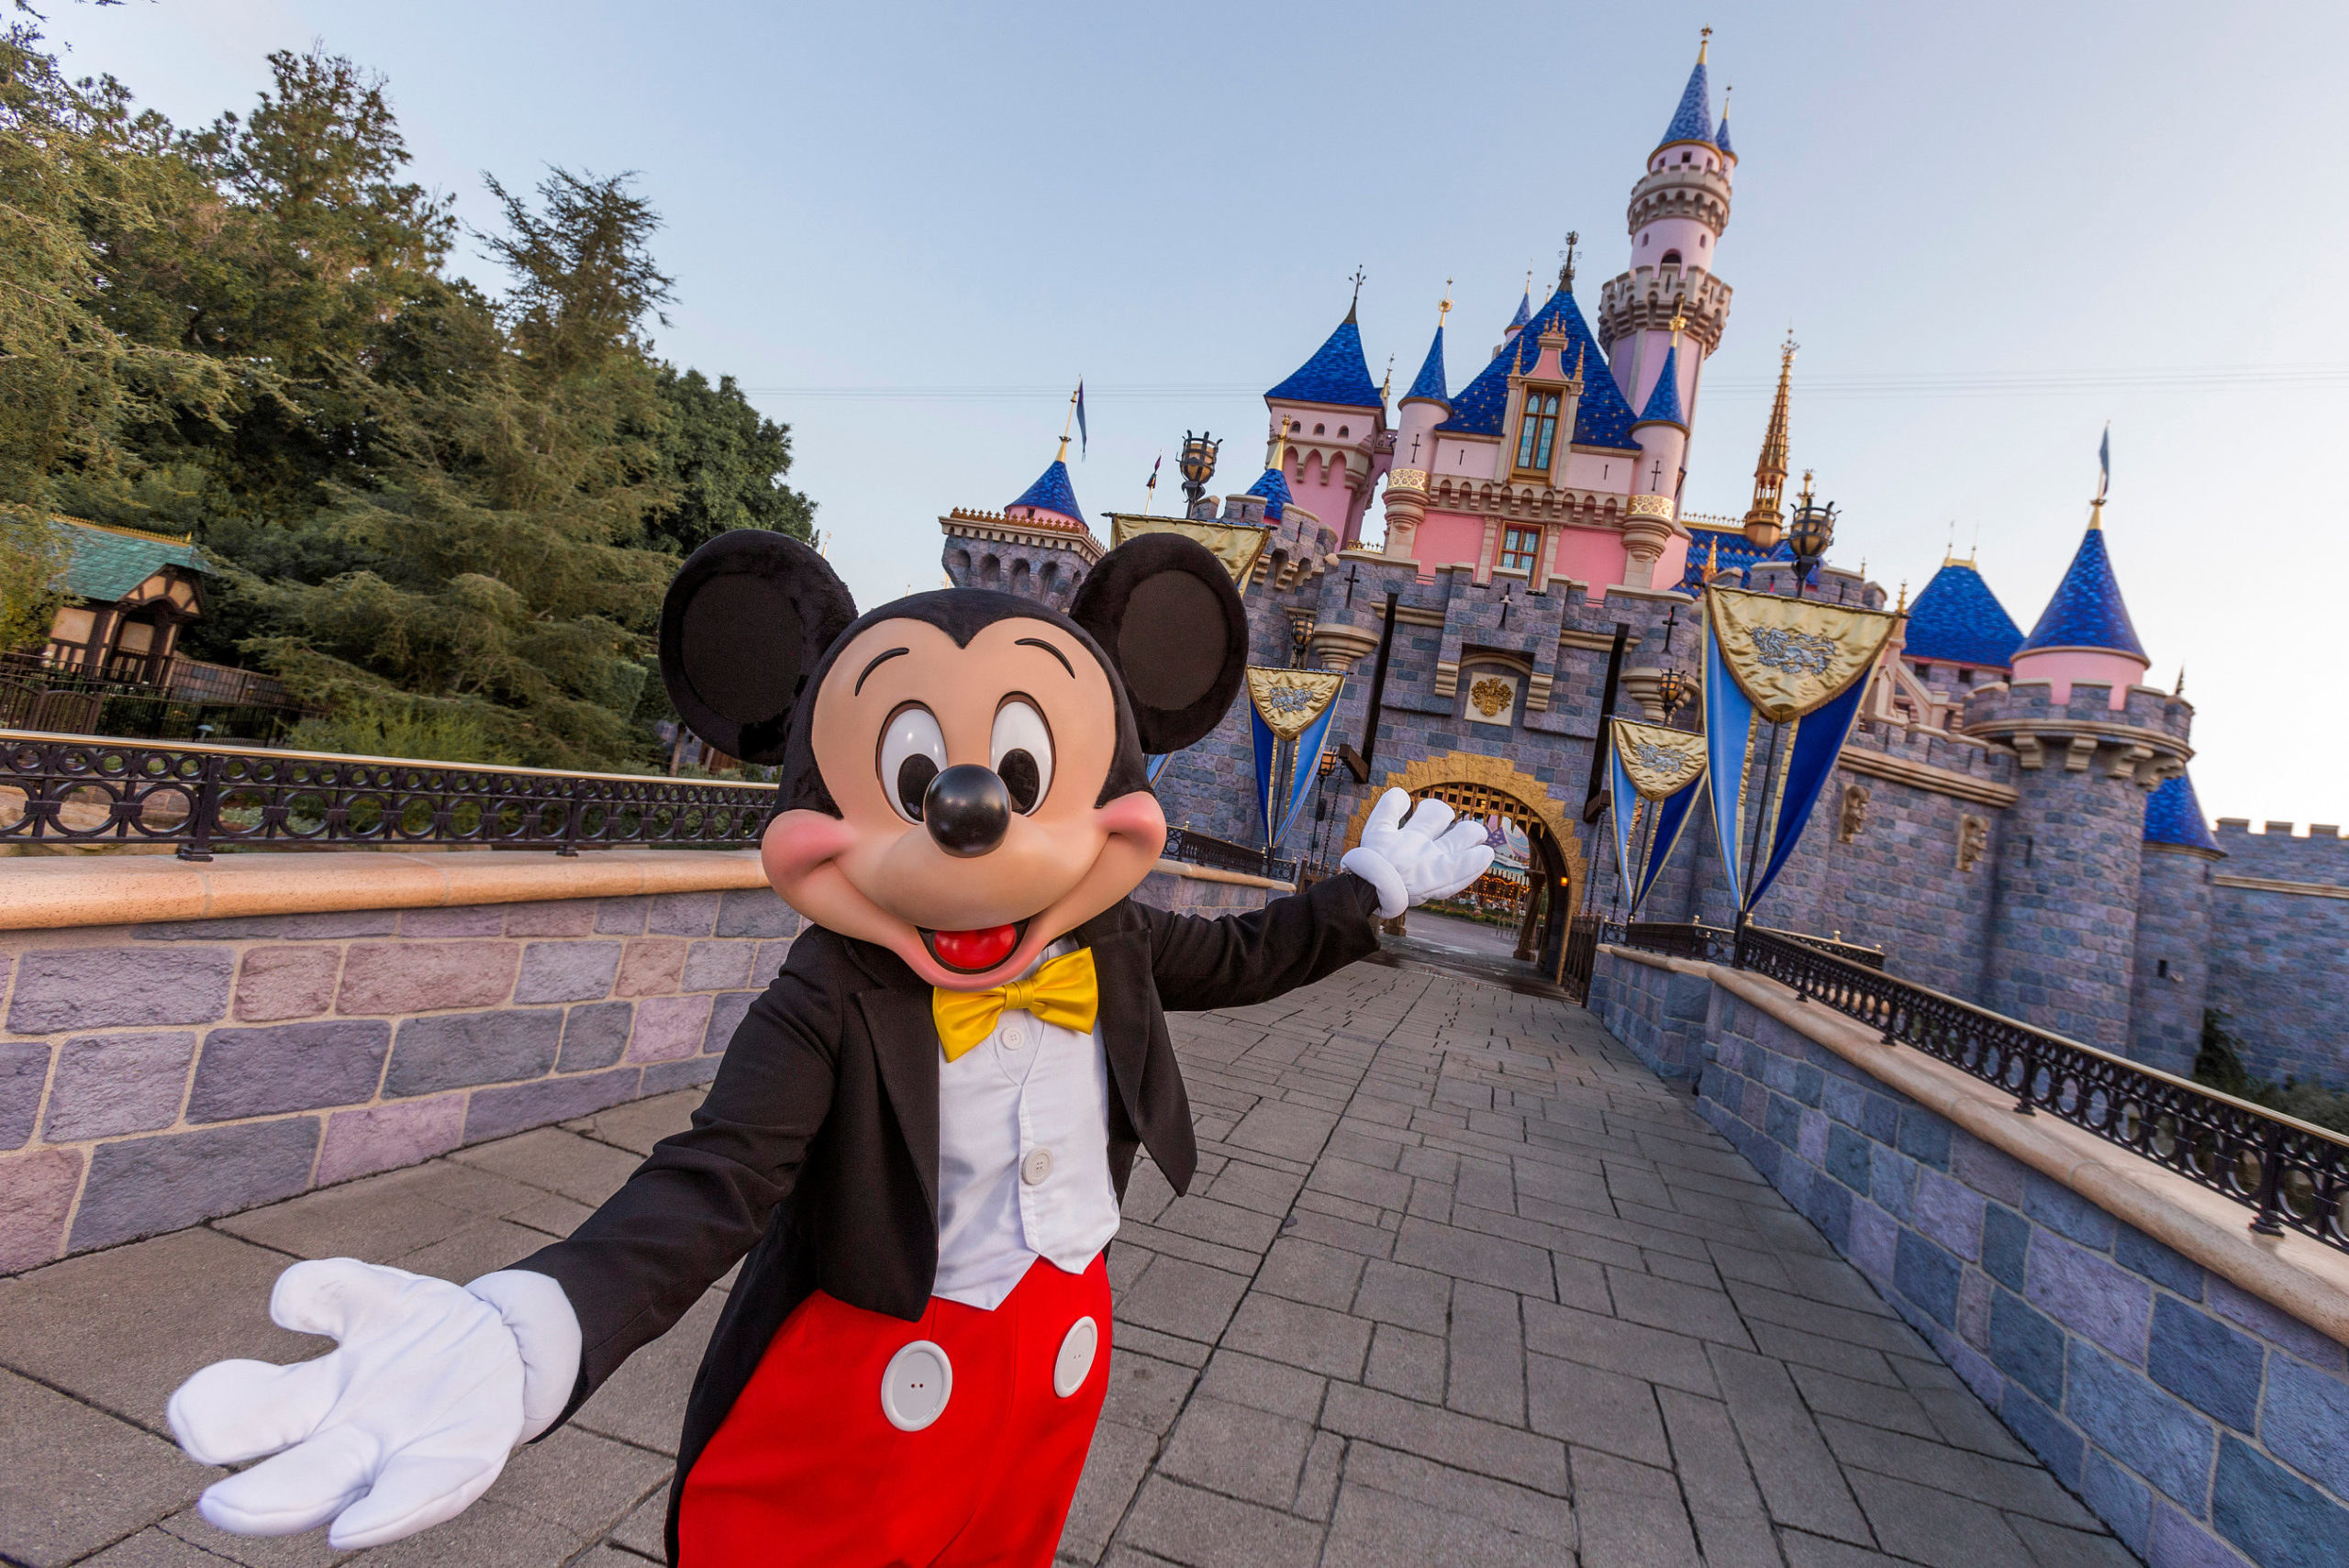 Mickey Mouse poses in front of Sleeping Beauty Castle at Disneyland Park